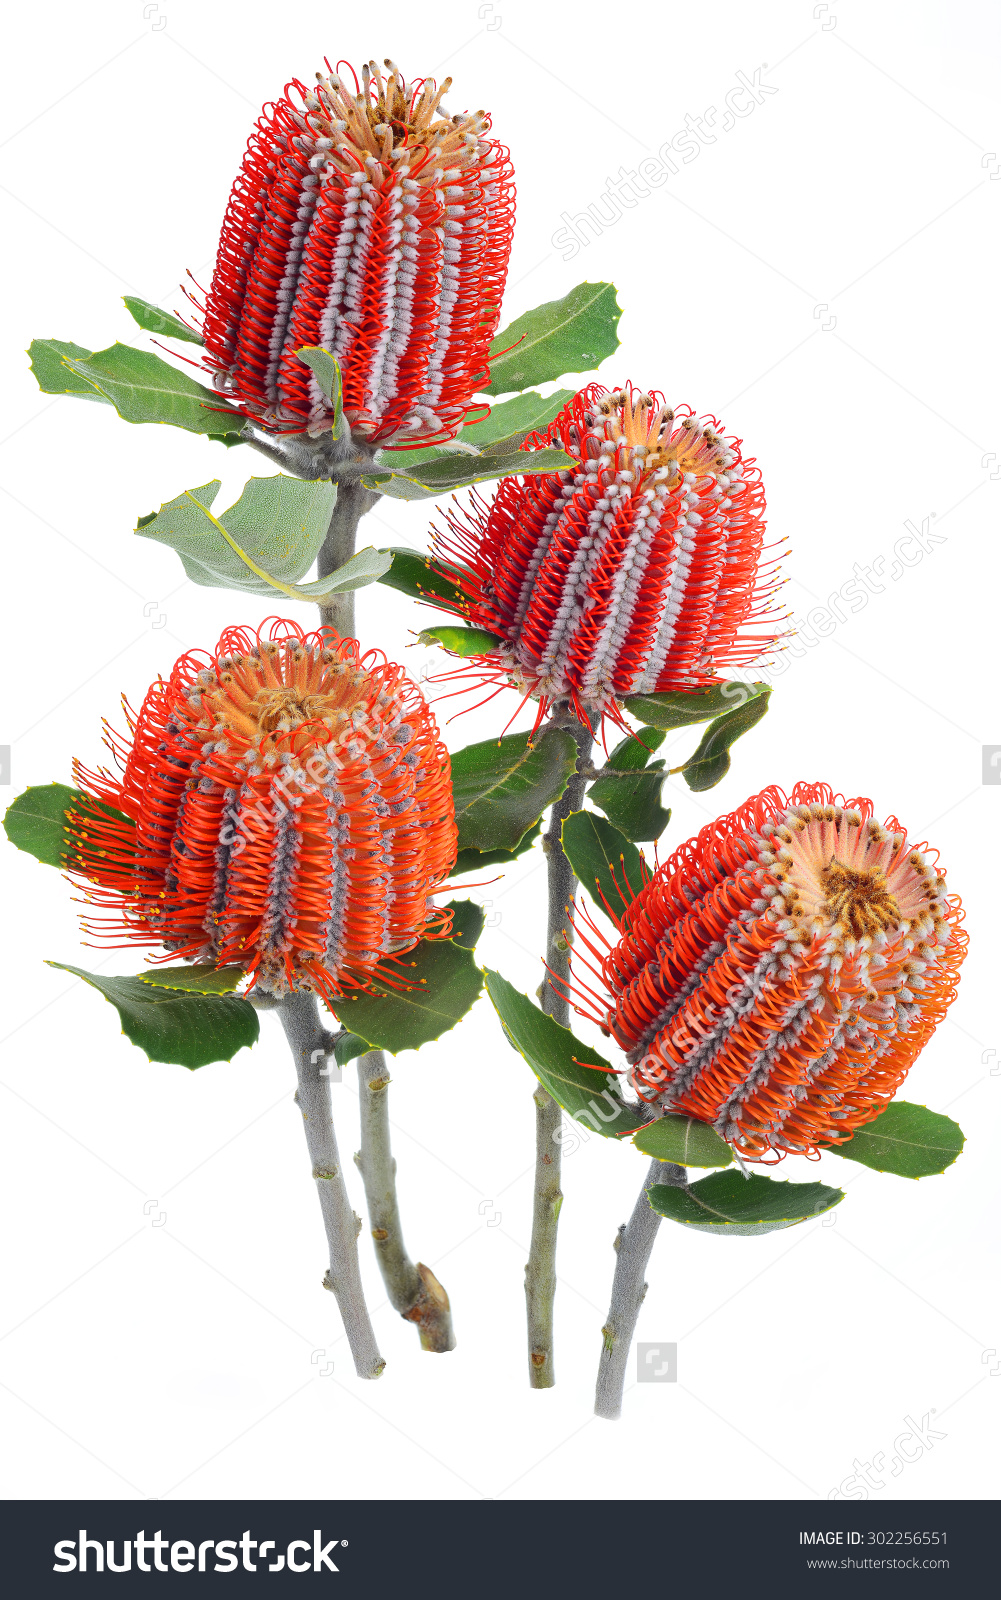 Banksia clipart #2, Download drawings